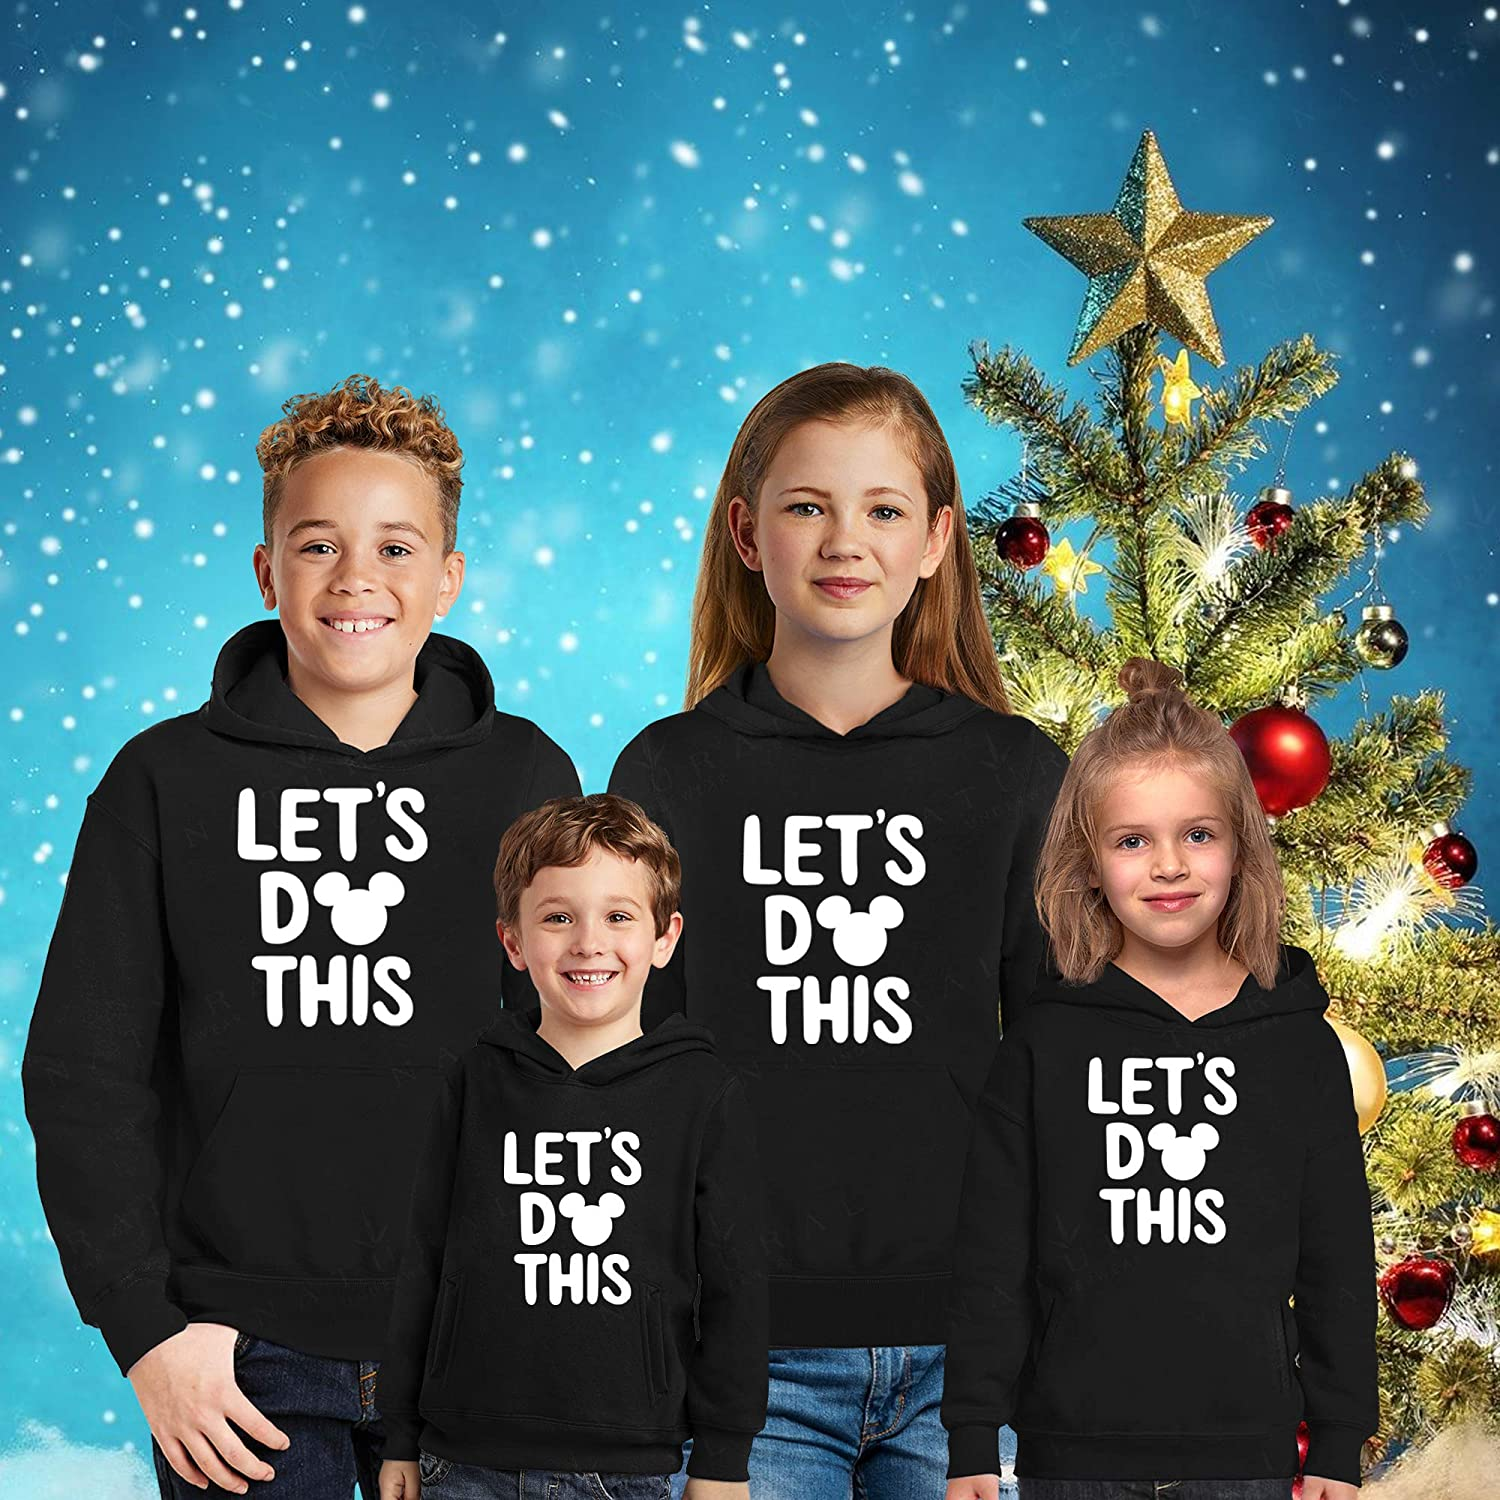 Natural Underwear Family Trip Kids Youth Hoodies 2019#4 Lets Do This Mickey Mouse Minnie Mouse Magic Kingdom Vacation Castle Youth Kids Boys Girls Hooded Sweatshirts Sweaters Black Girls Medium